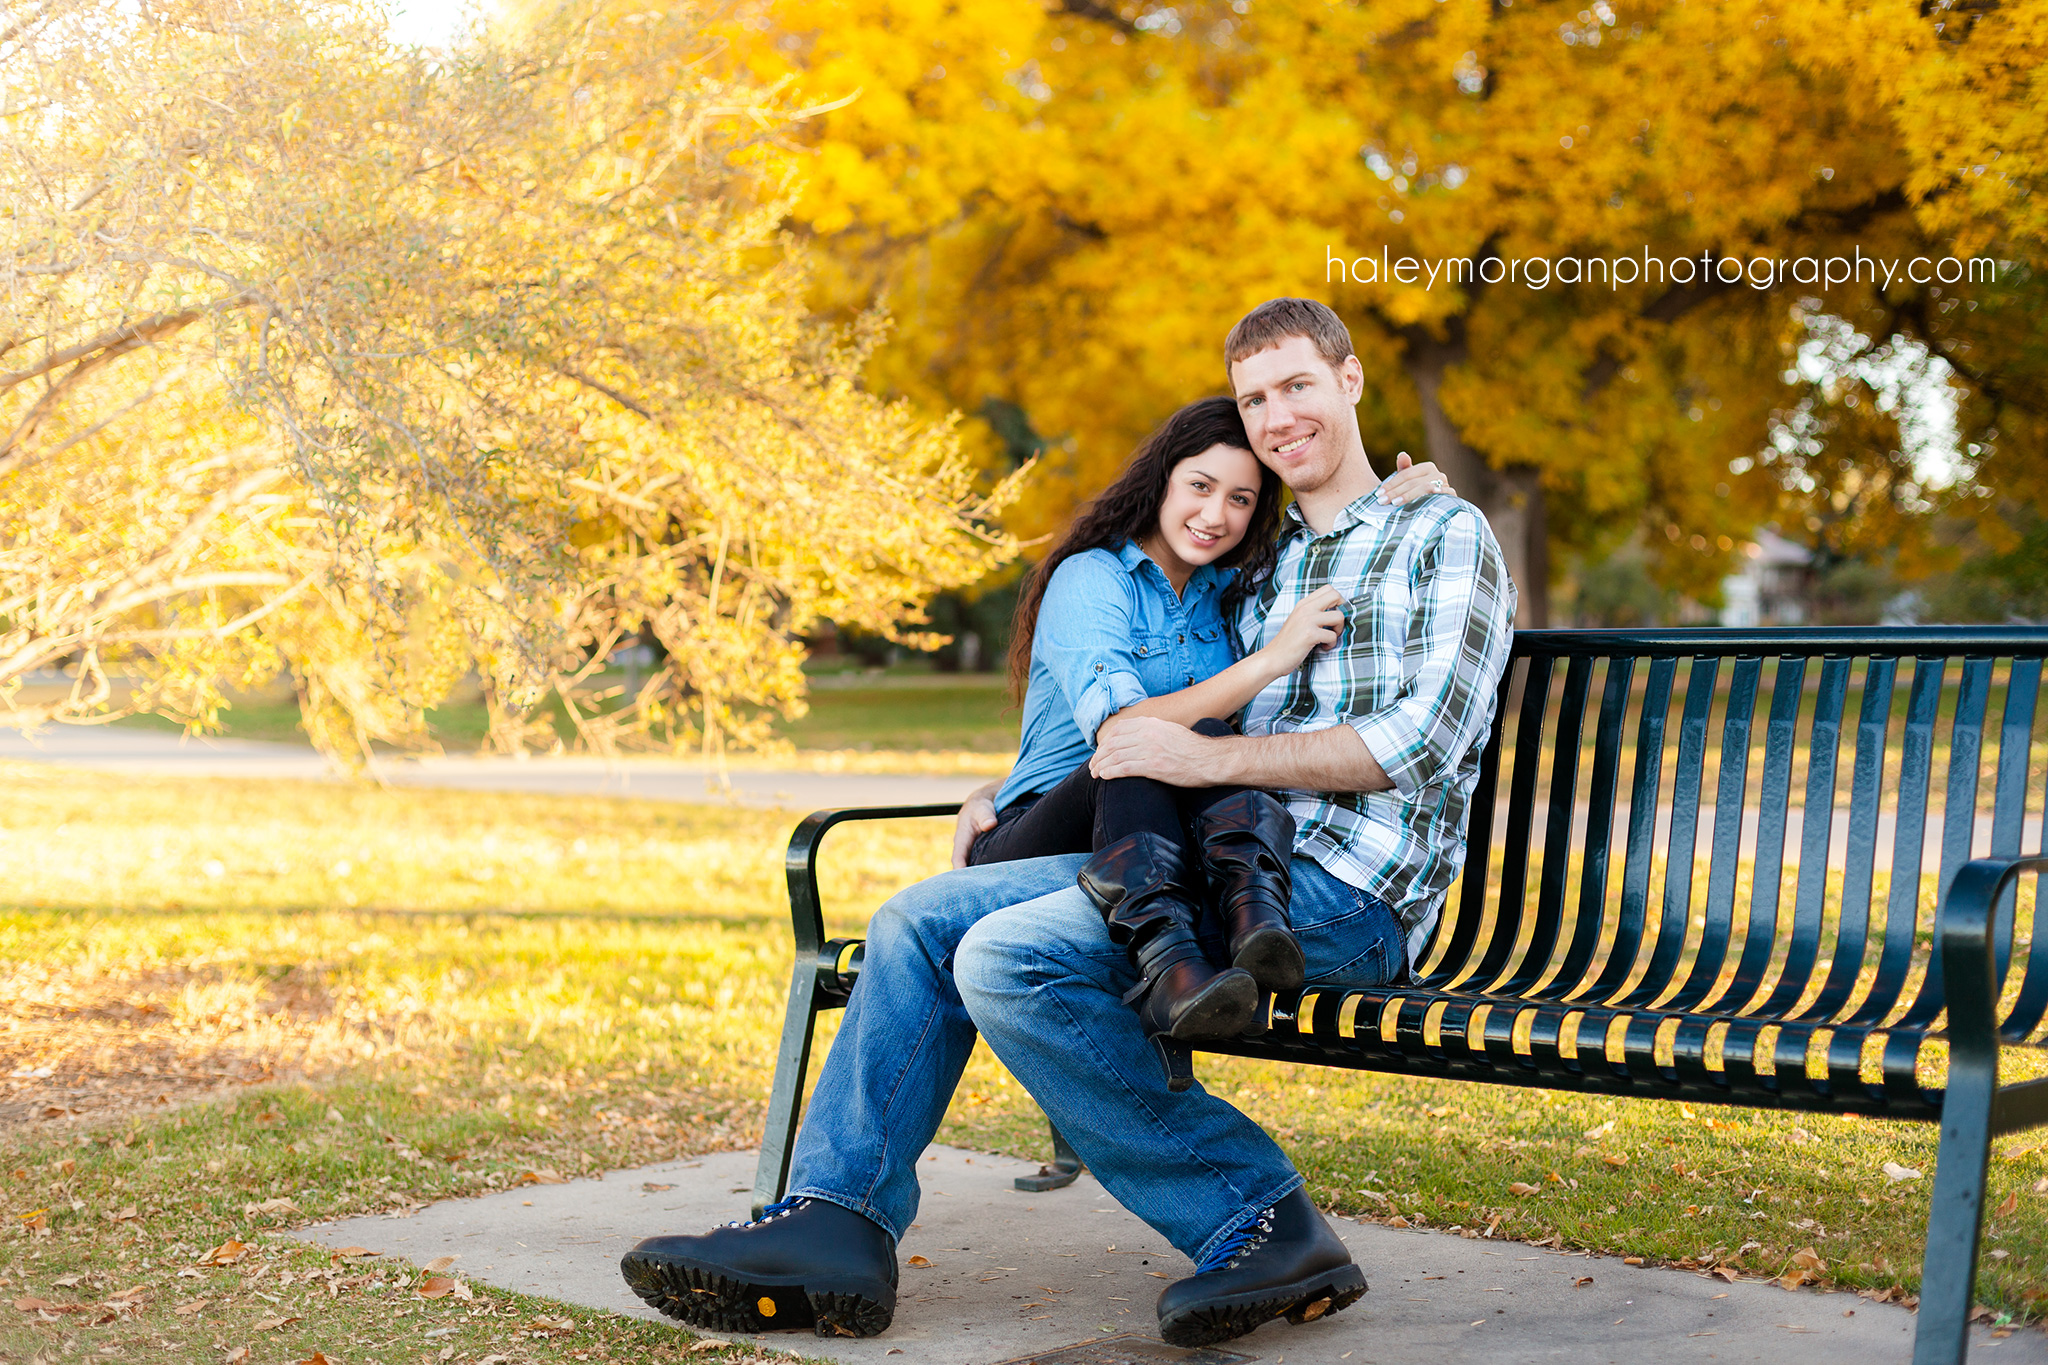 Denver Engagement Photographer, Denver Wedding Photographer, Denver Photographer, Thornton Wedding Photographer, Thornton Engagement Photographer, Stonebrook Manor, Stonebrook Manor Photographer, Stonebrook Manor Wedding Photographer, Stonebrook Manor Wedding, Videographer, Haley Morgan Photography, Denver City Park Photographer, City Park Engagement Photographer, City Park Photographer, Denver City Park, City Park